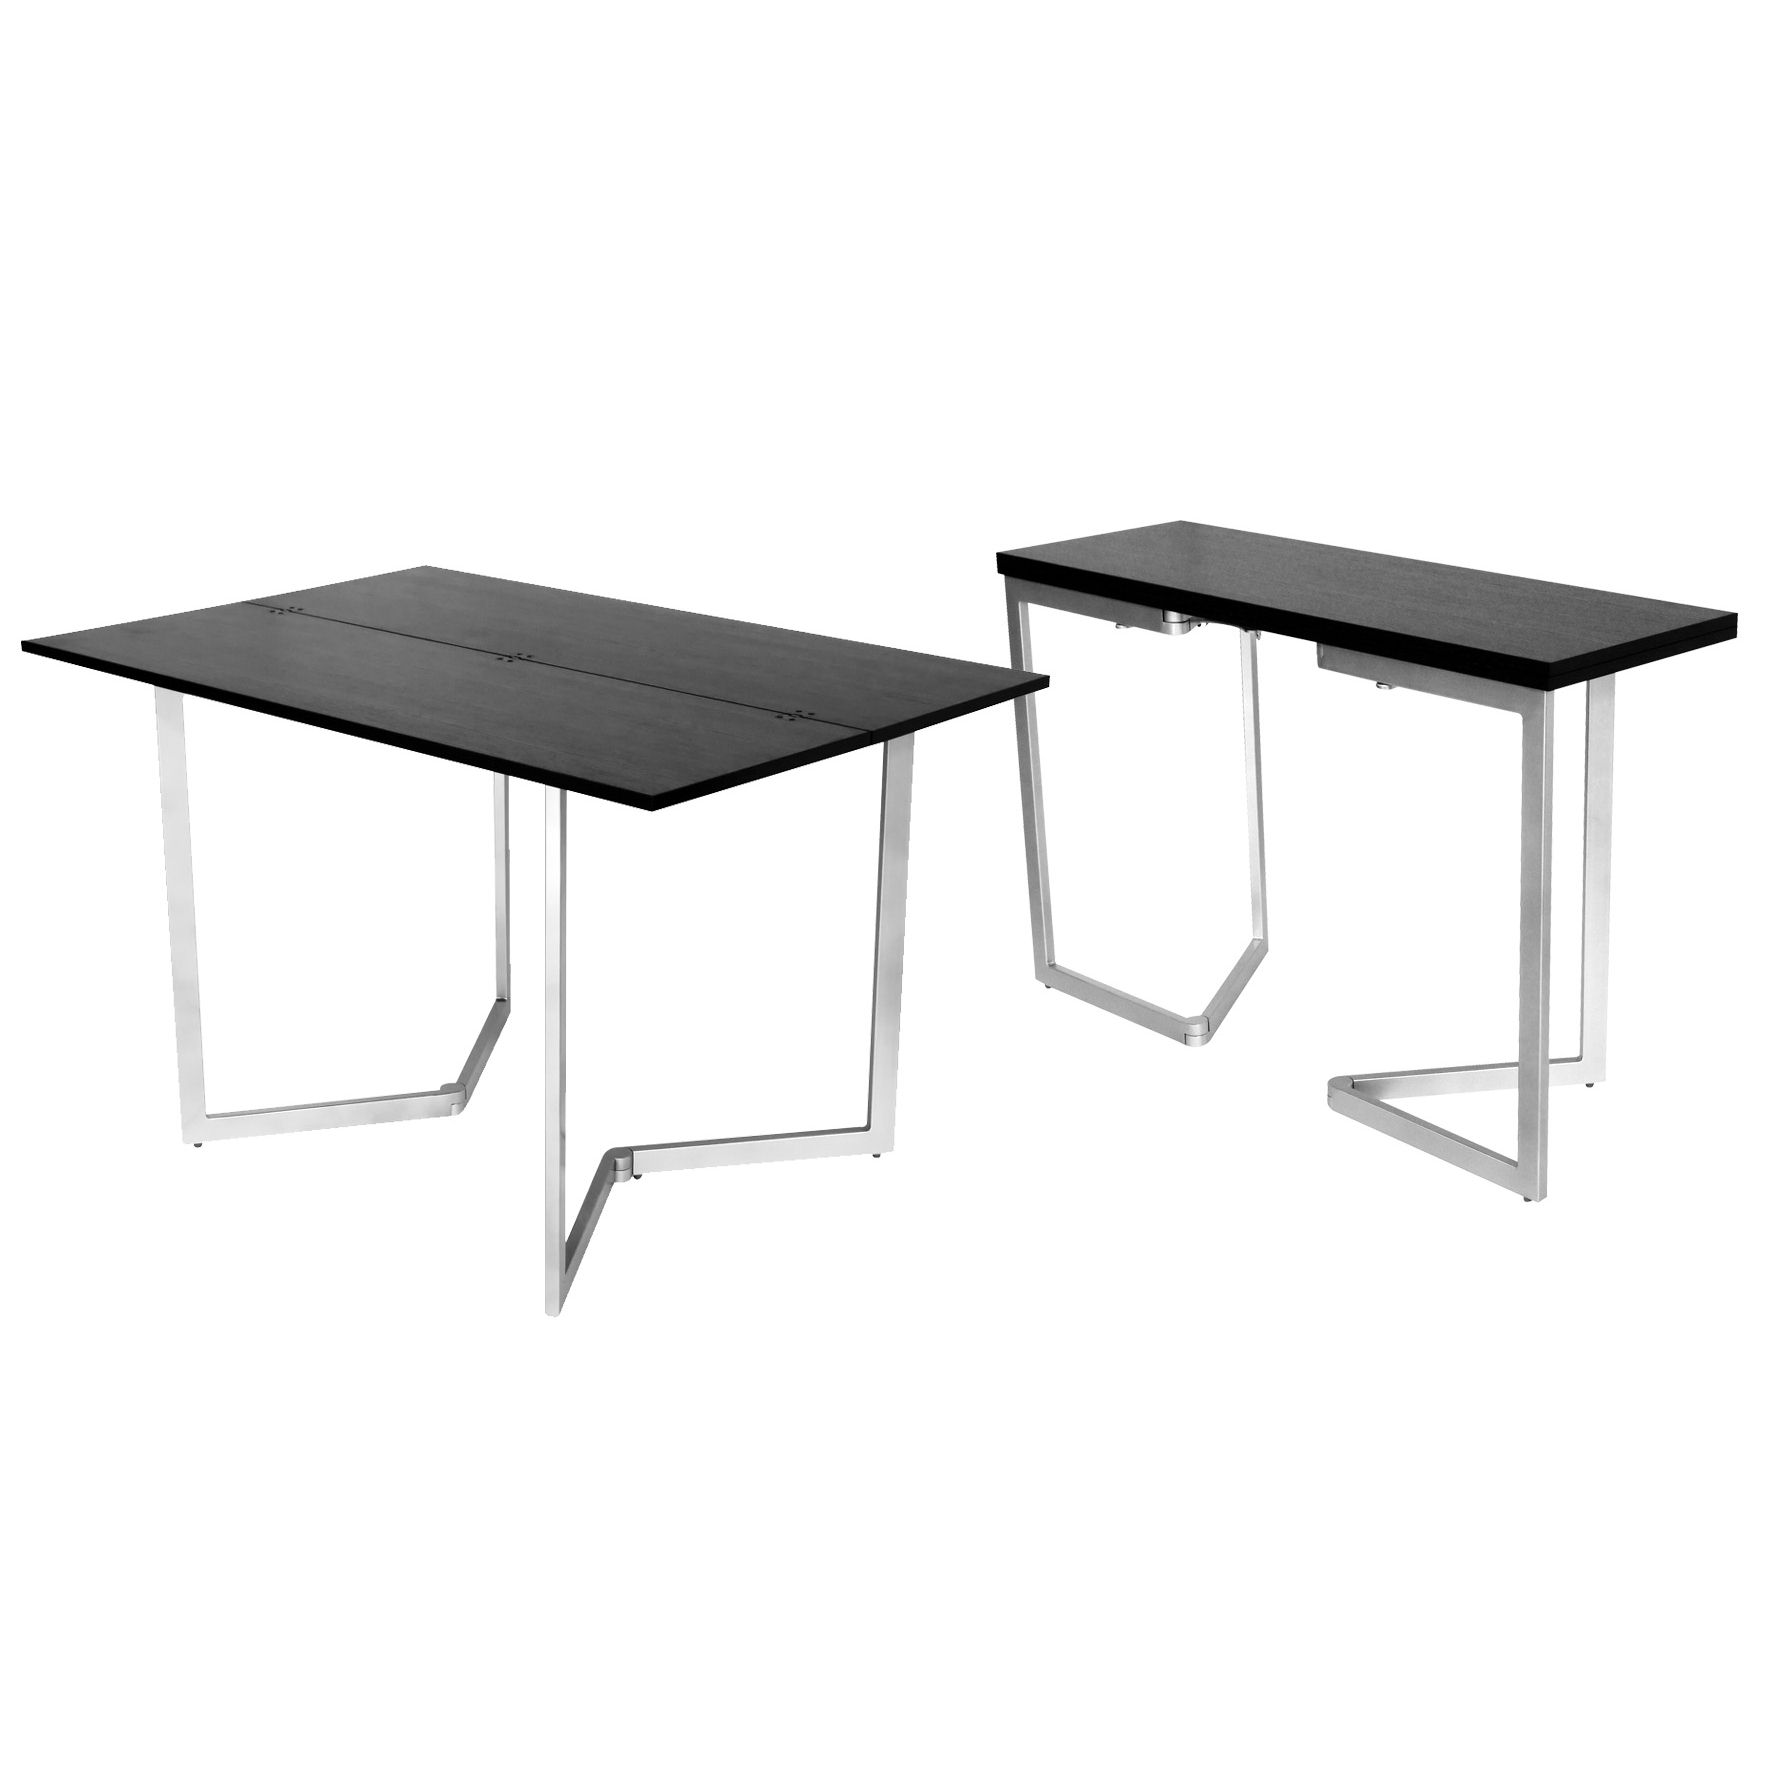 Deco in paris table console extensible wenge talia for Table extensible en hauteur